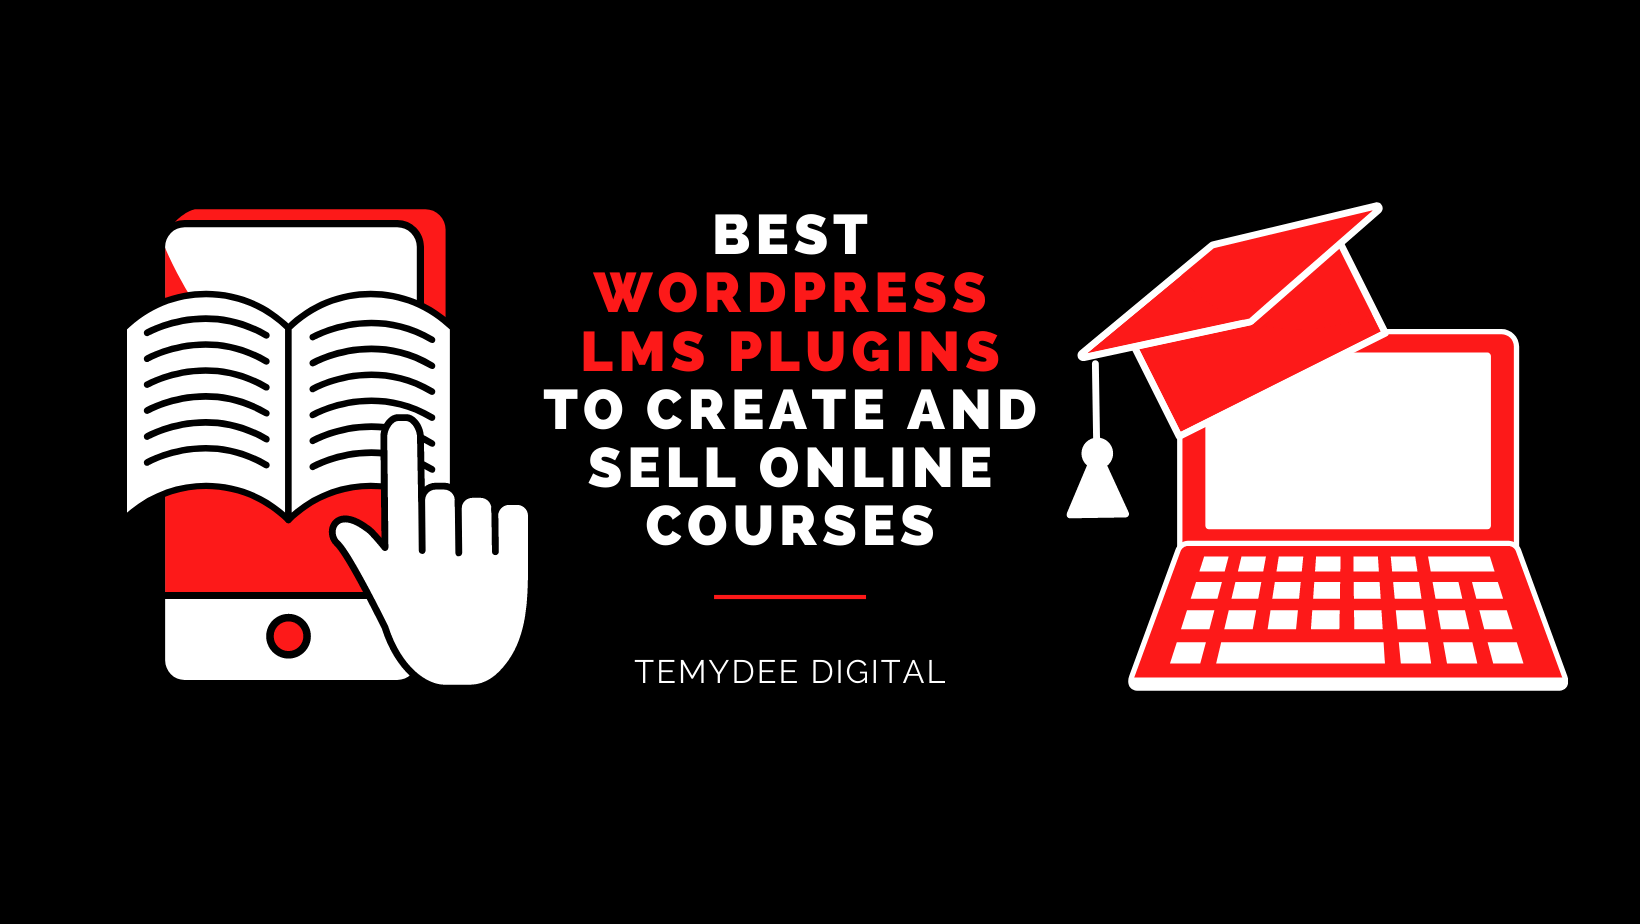 Best WordPress LMS Plugins To Create and Sell Online Courses In 2021